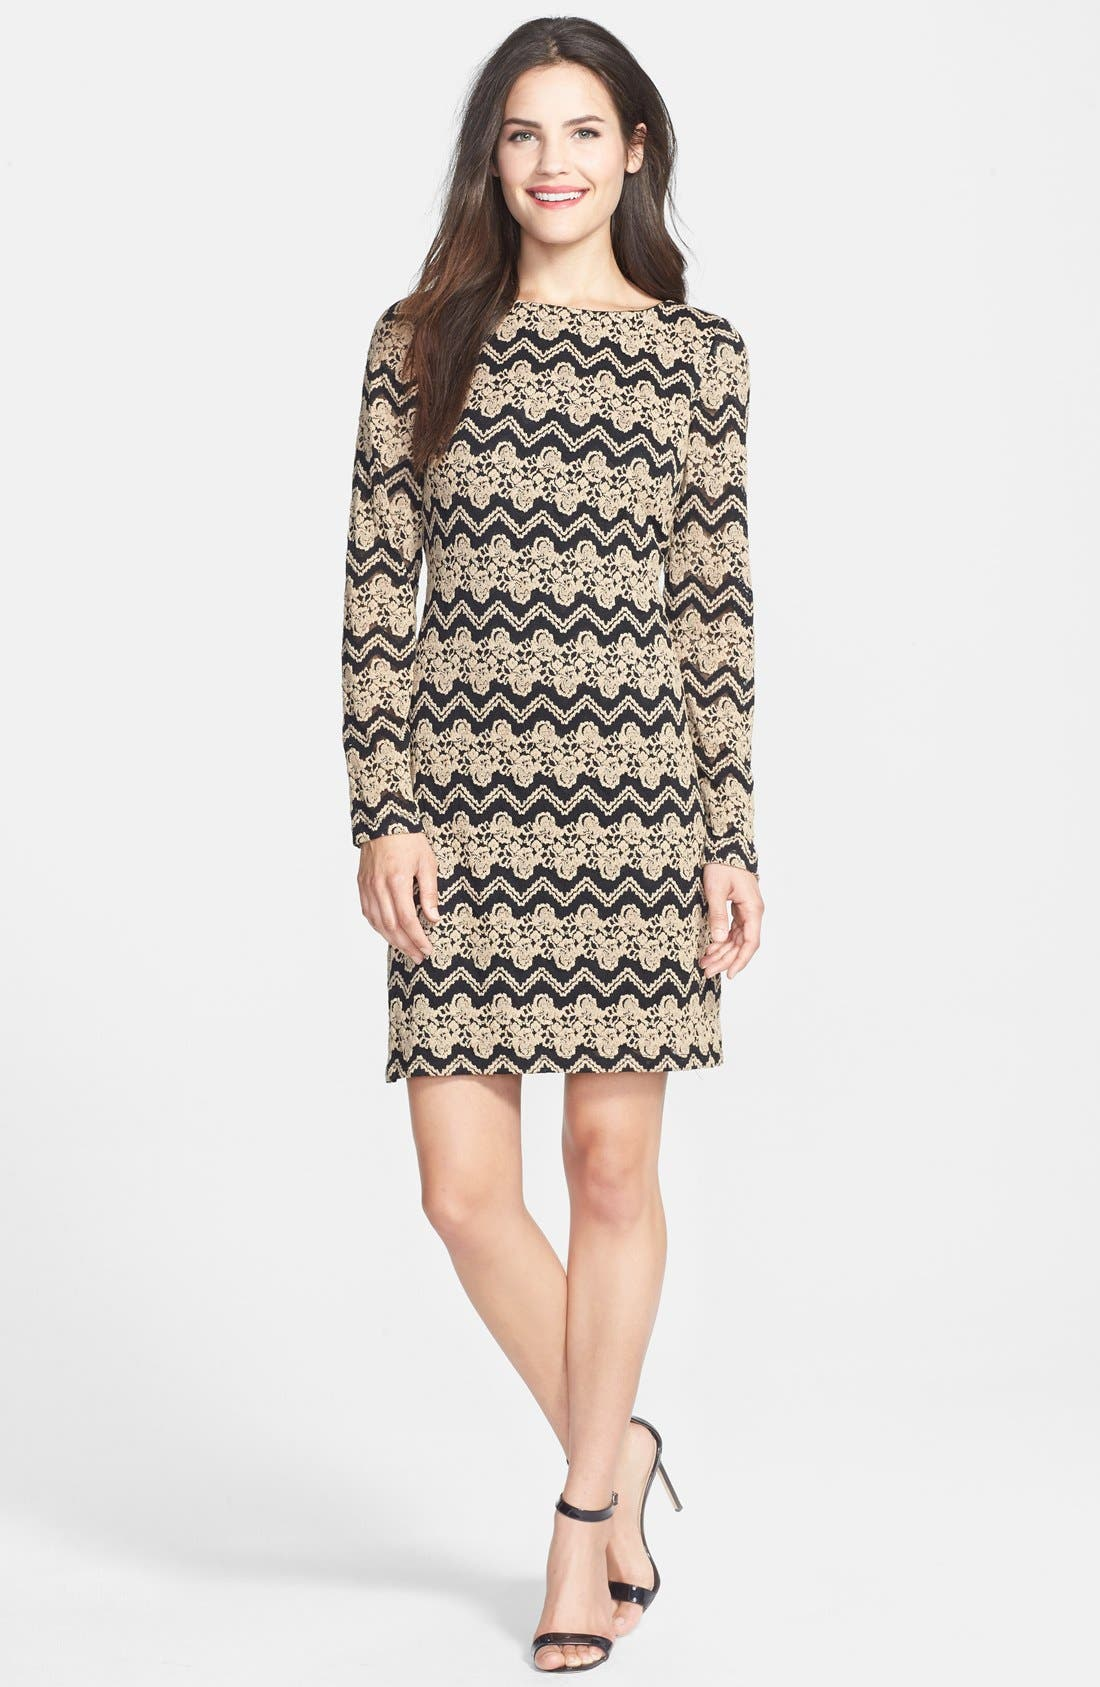 ELIZA J, Chevron Lace Shift Dress, Alternate thumbnail 4, color, 001